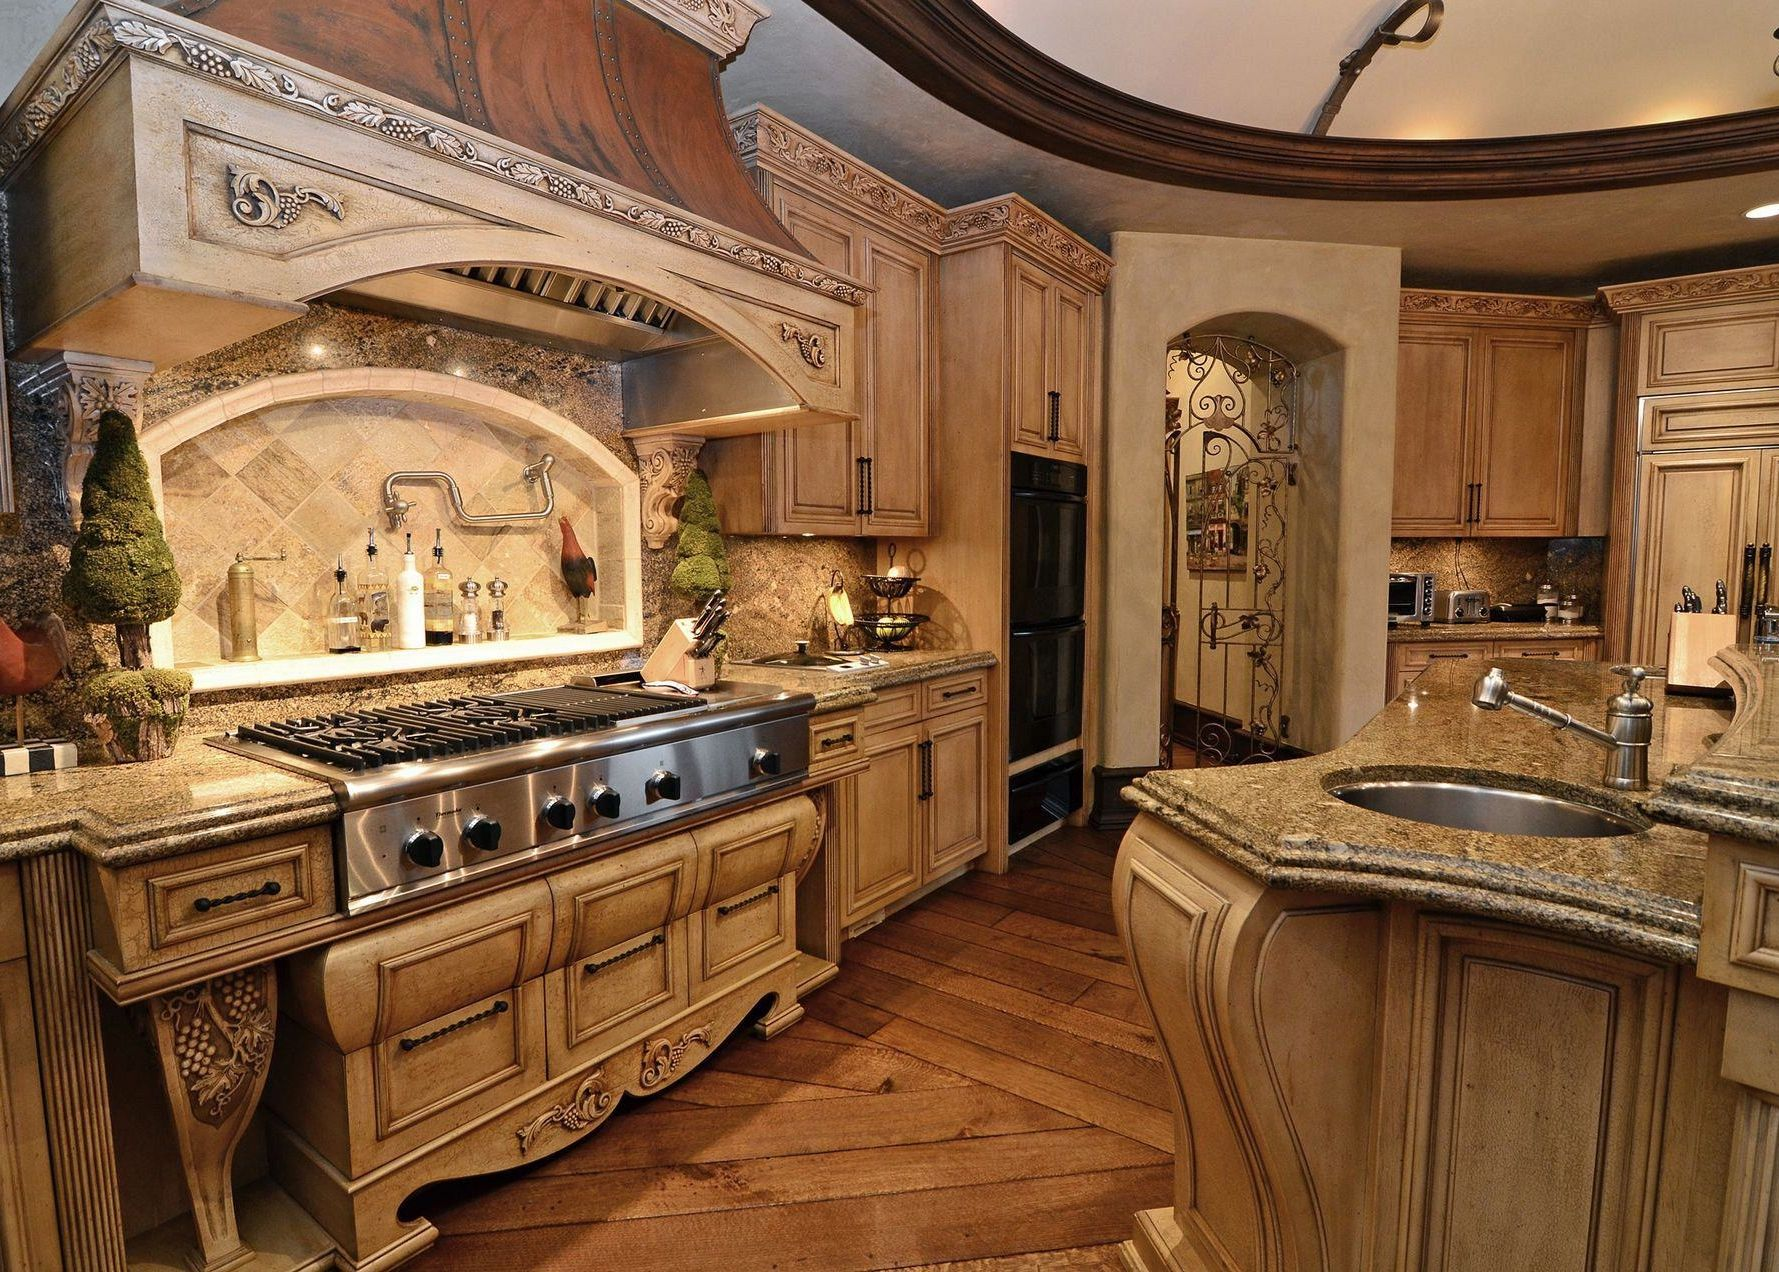 Old world kitchens interior and exterior design ideas for Old country style kitchen ideas